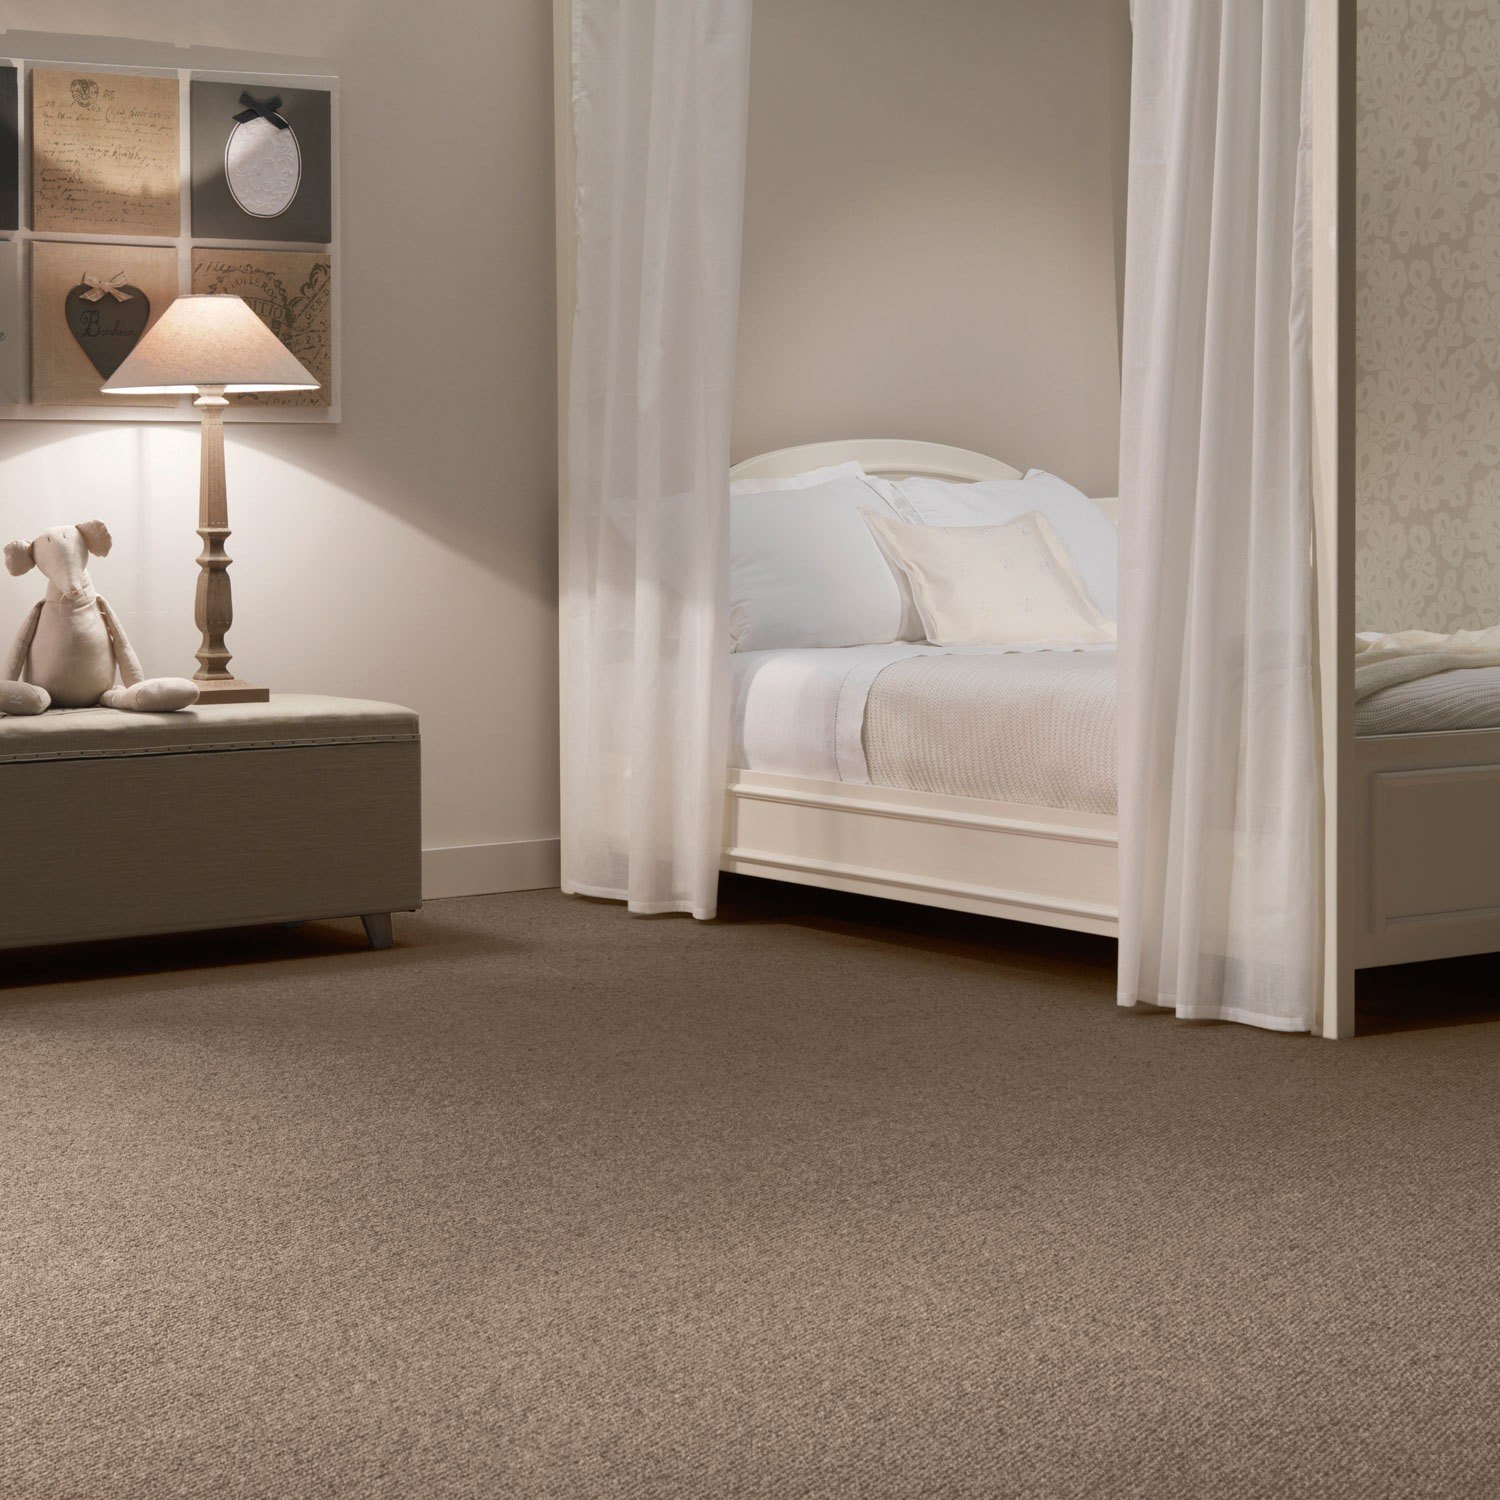 bedroom carpets best type of carpet for stairs and bedroom home what is gallery XIAUPRC